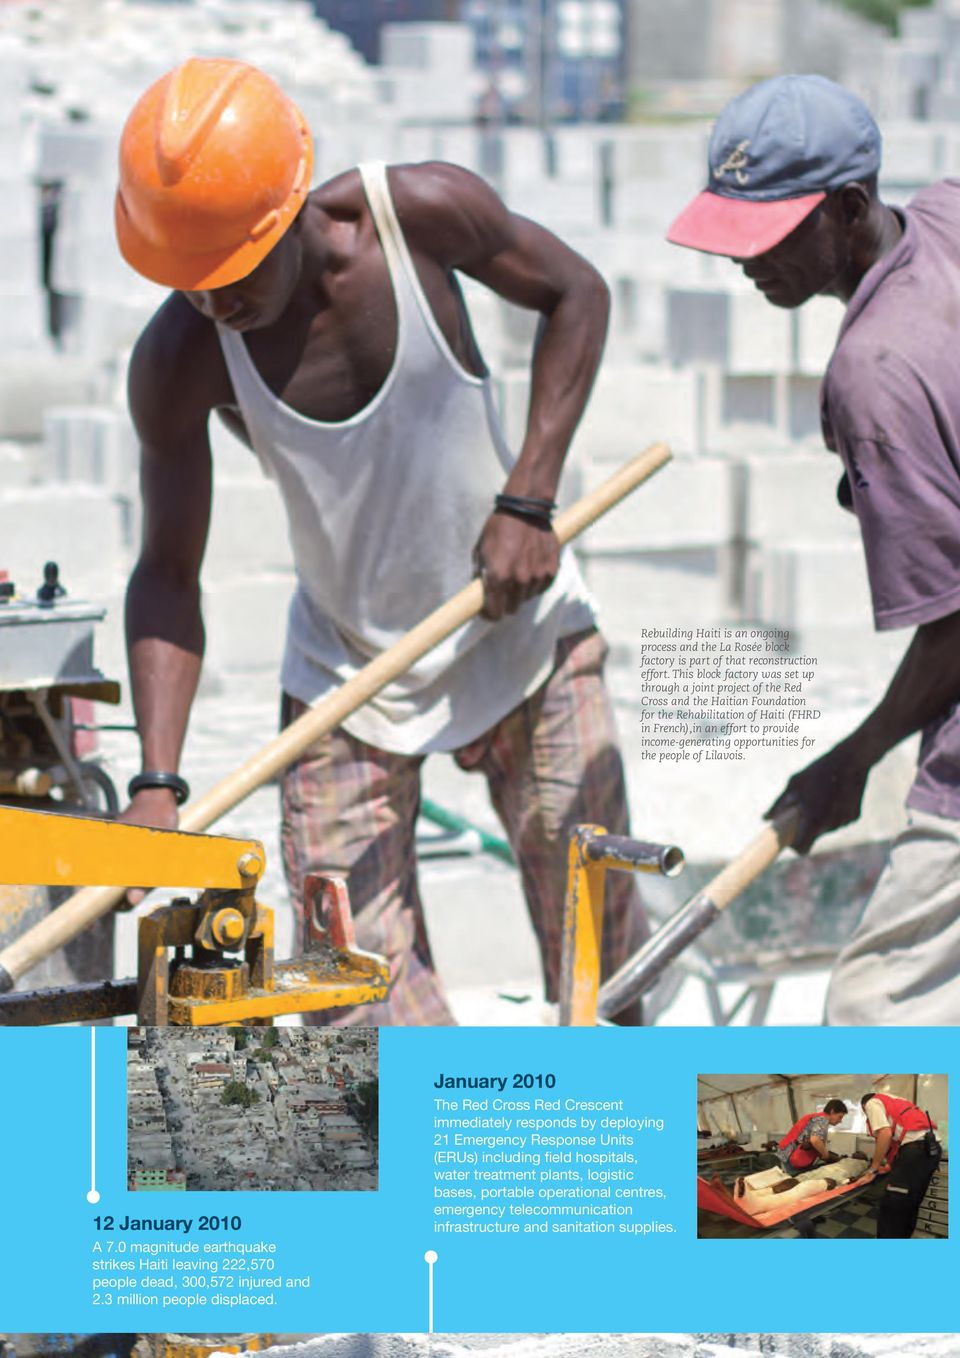 income-generating opportunities for the people of Lilavois. 12 January 2010 A 7.0 magnitude earthquake strikes Haiti leaving 222,570 people dead, 300,572 injured and 2.